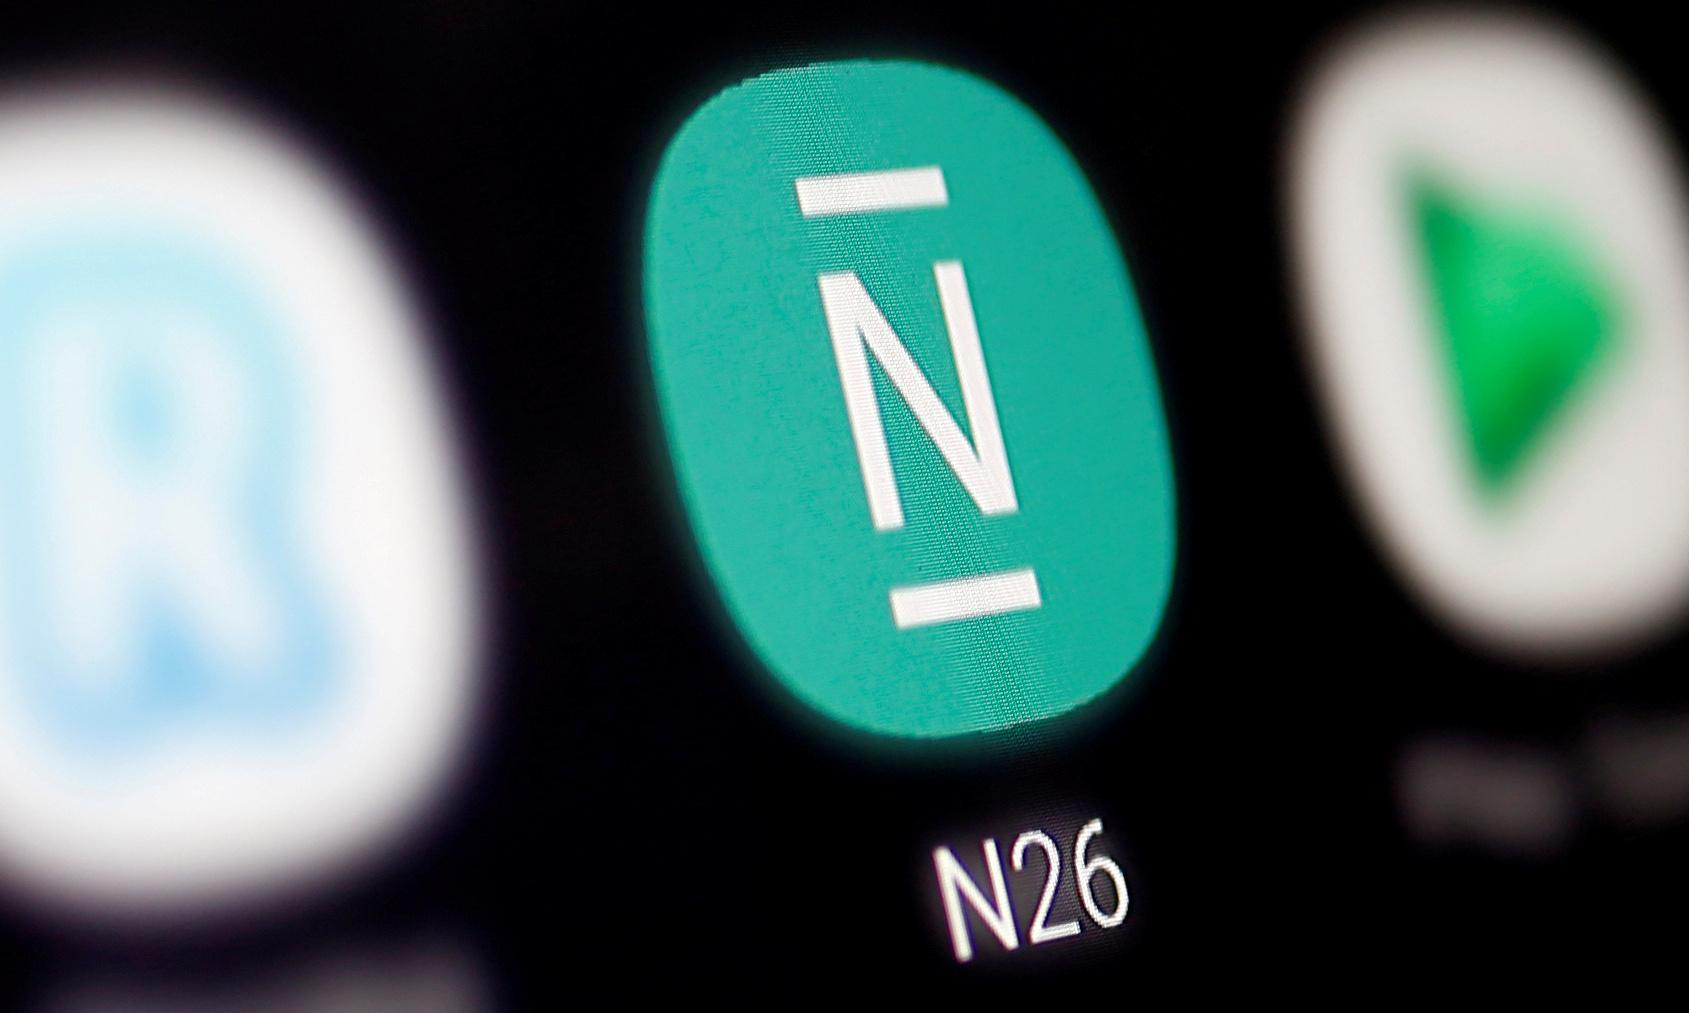 German digital bank N26 pulls out of UK, blaming Brexit